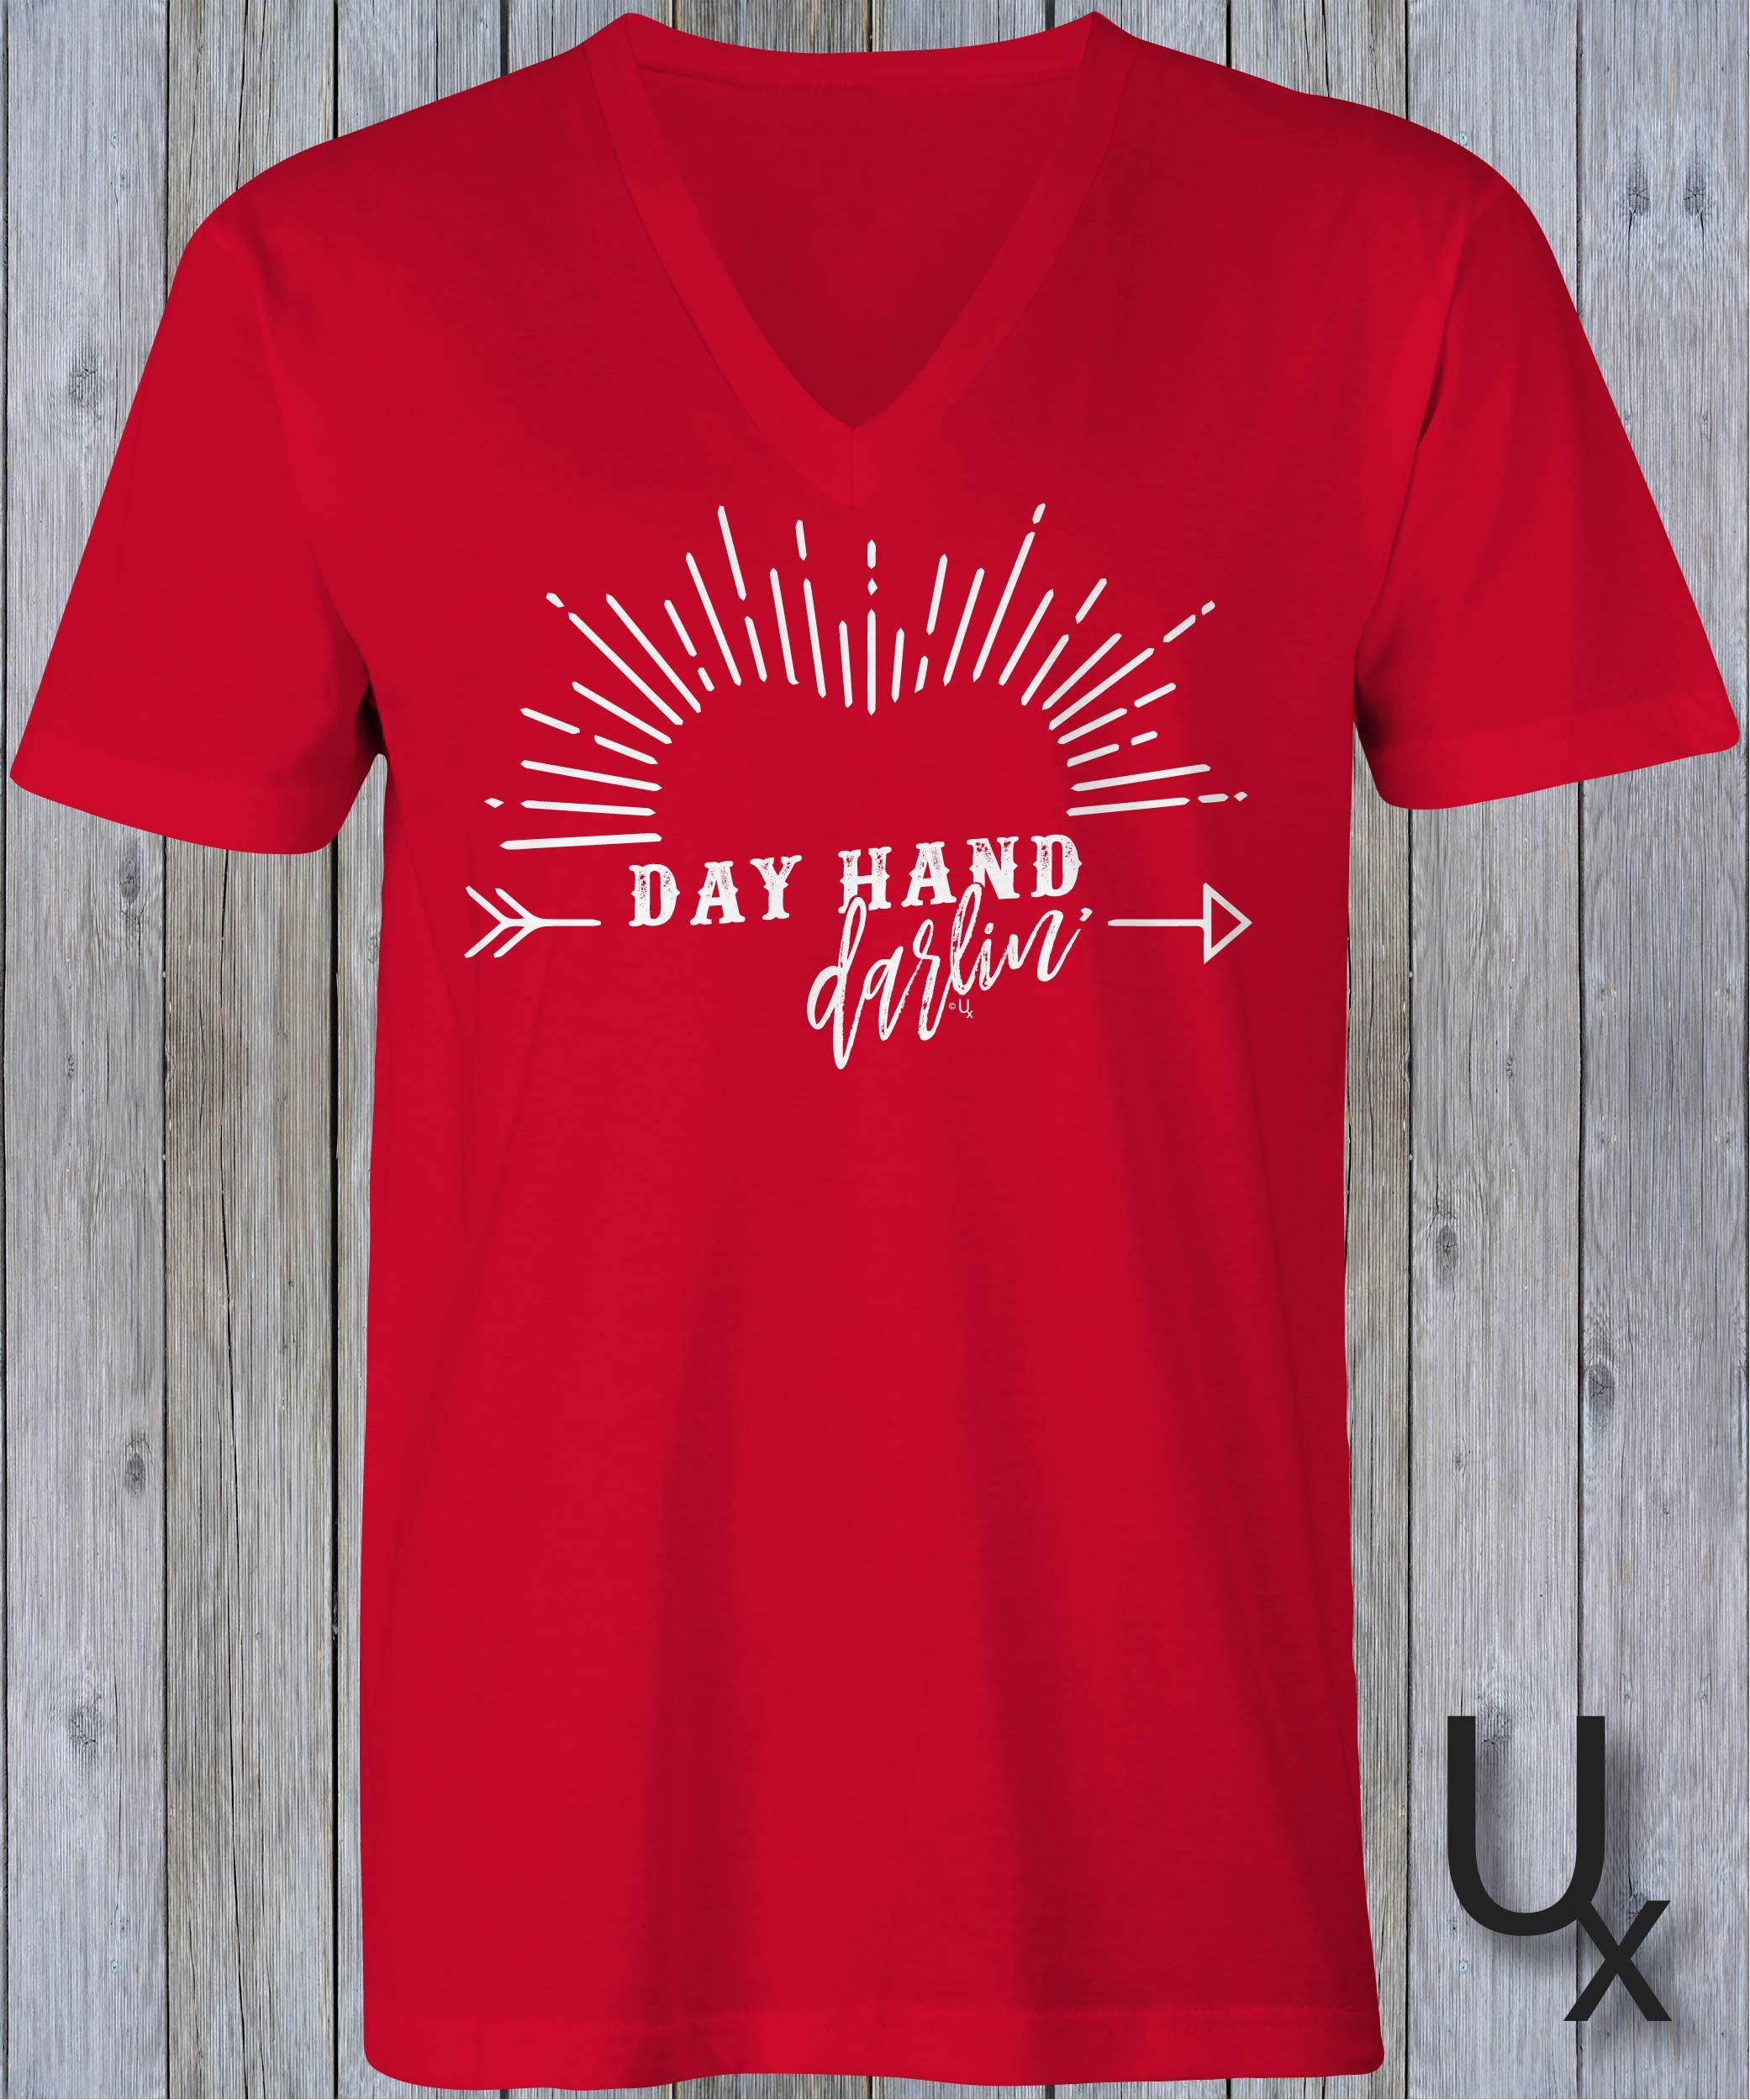 Day Hand Darlin tee - RED